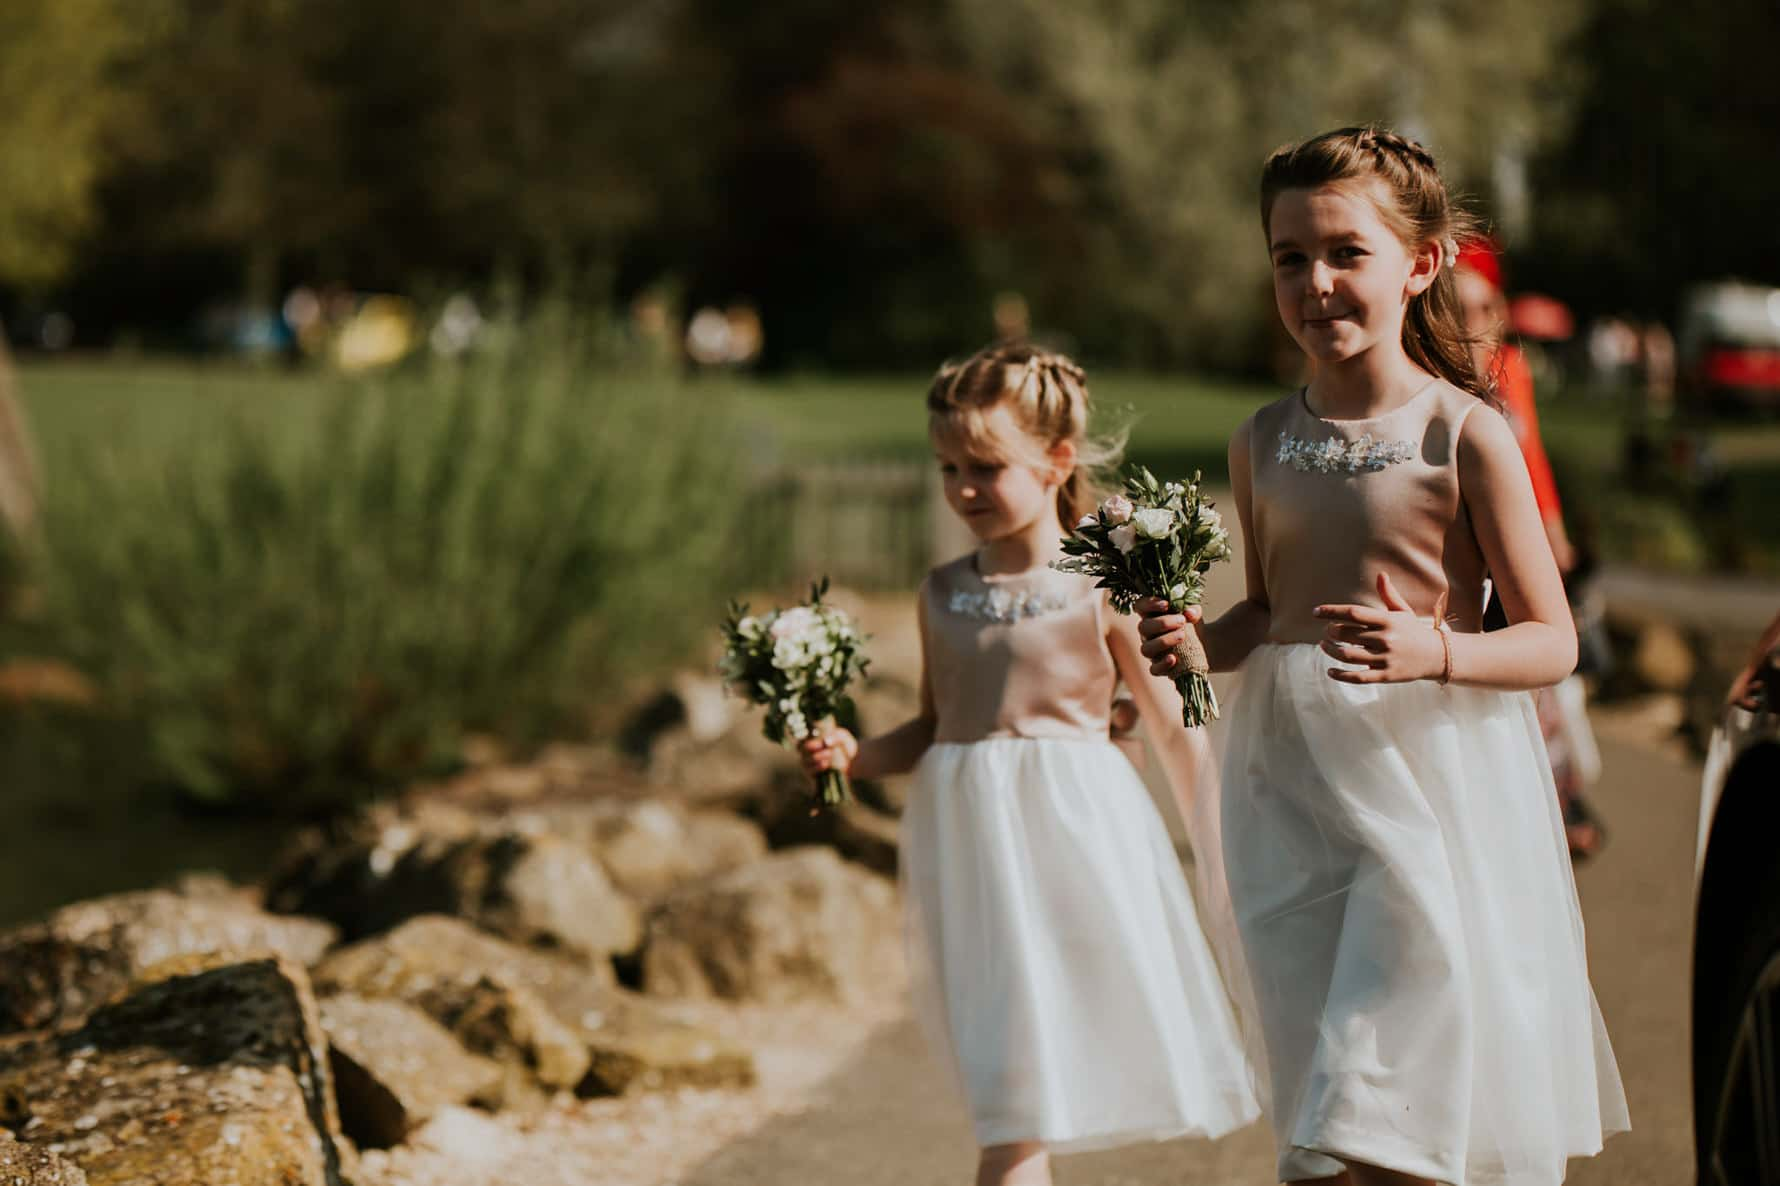 flower girls walking over to the wedding